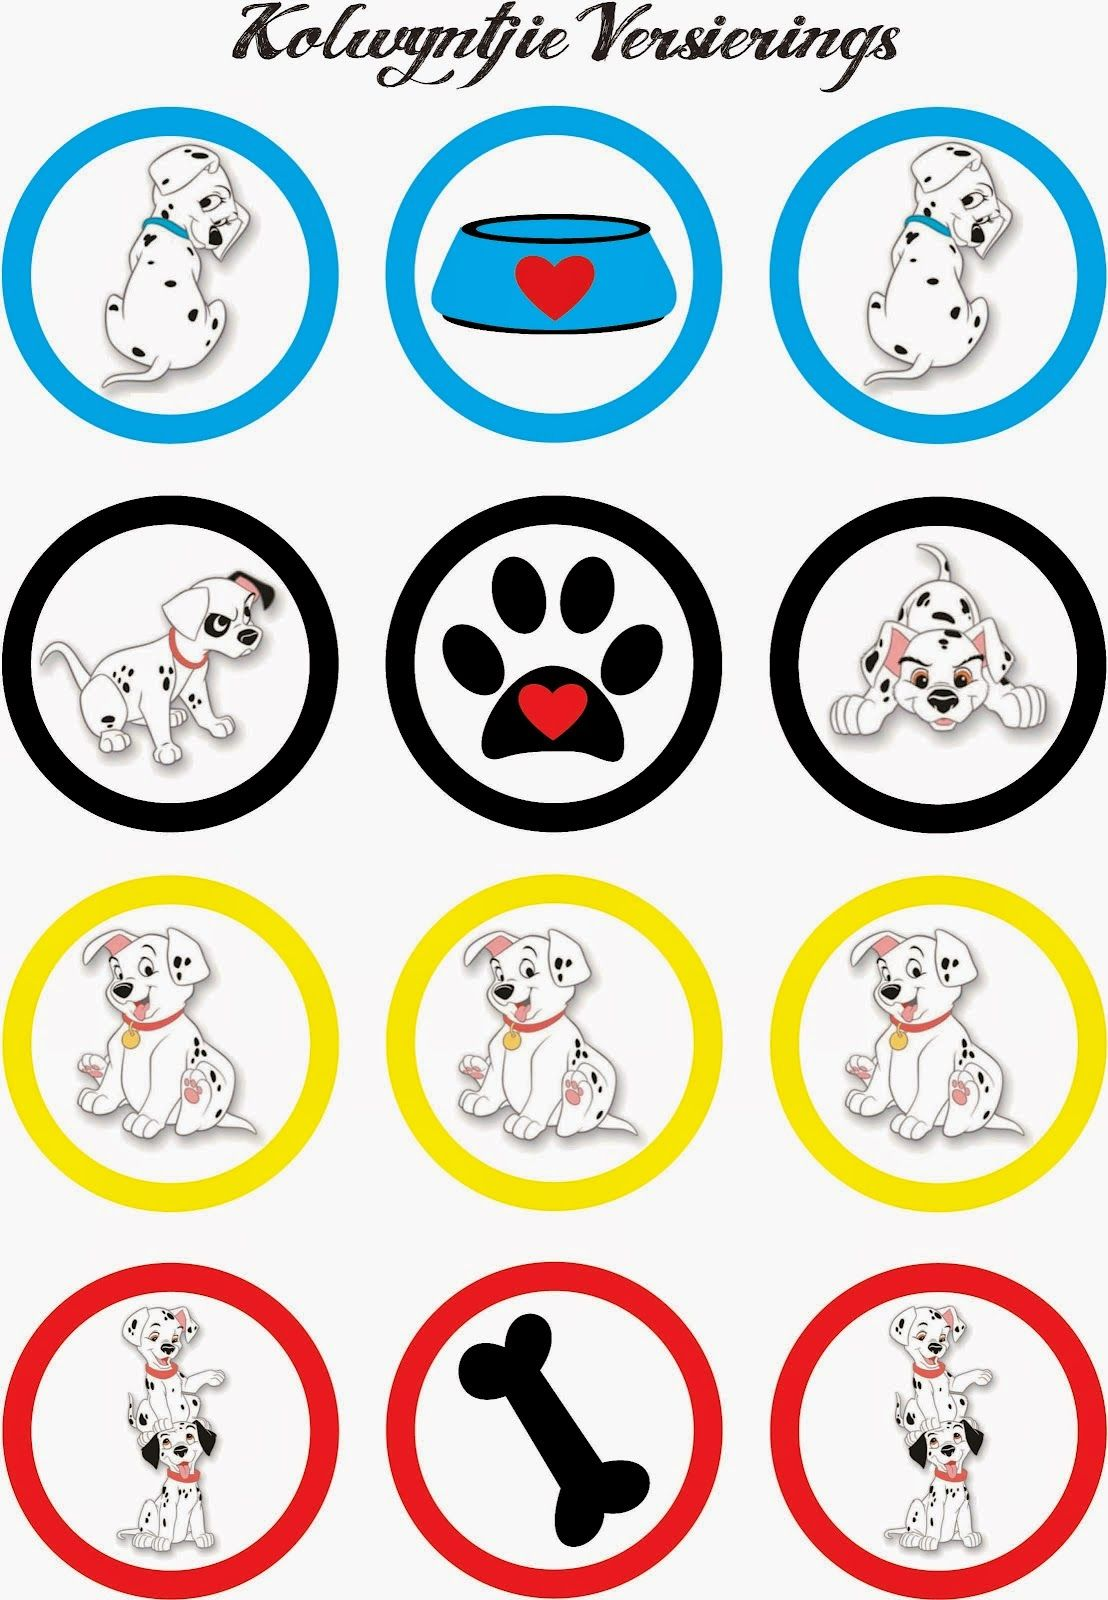 photo relating to Dalmation Printable known as 101 Dalmatians Free of charge Printable Mini Package. Clroom